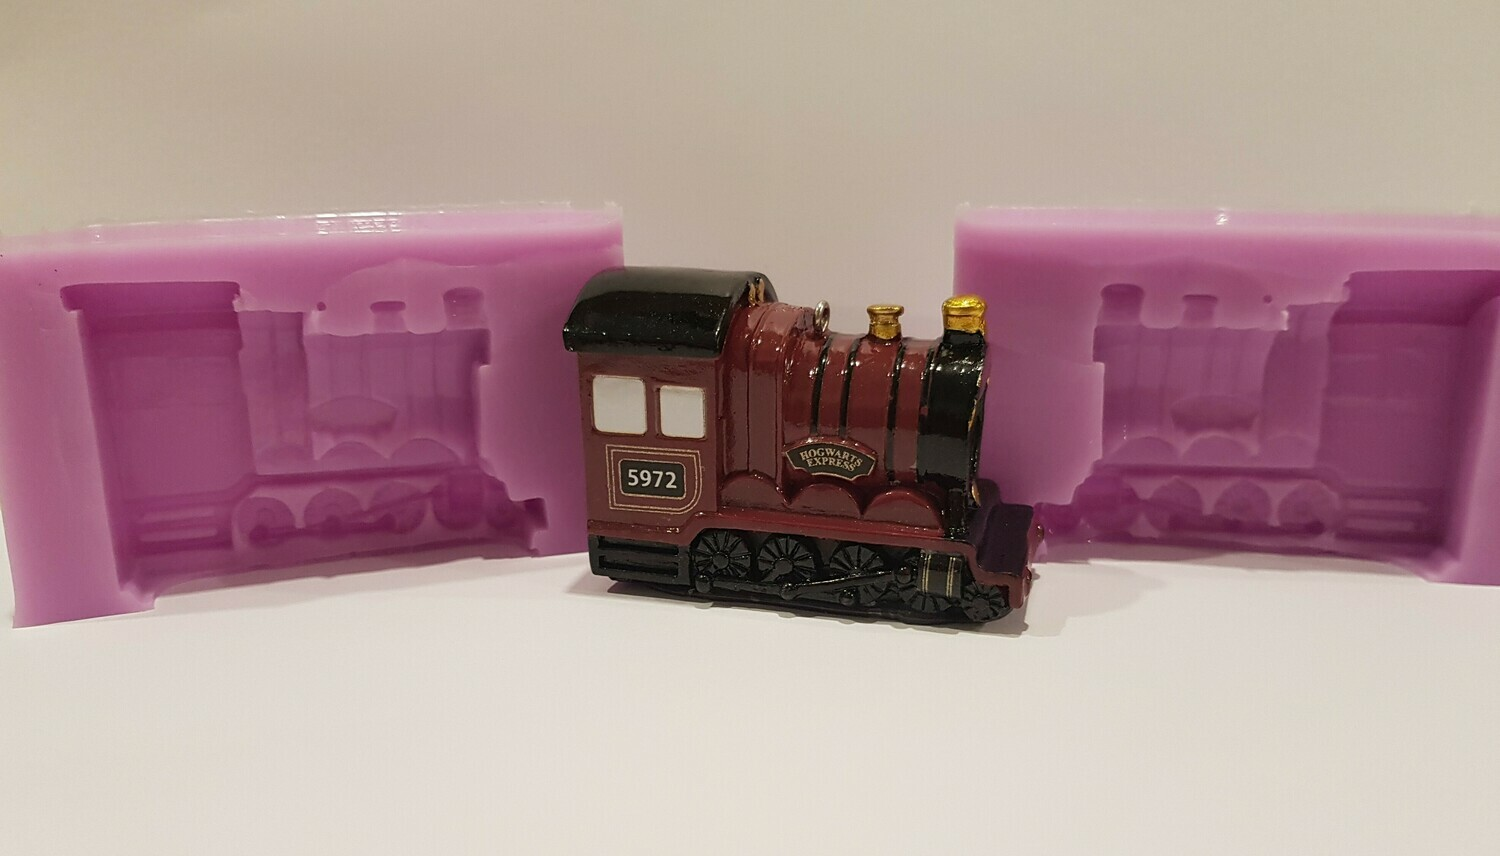 HARRY POTTER INSPIRED HOGWARTS EXPRESS TRAIN 3D SILICONE MOULD